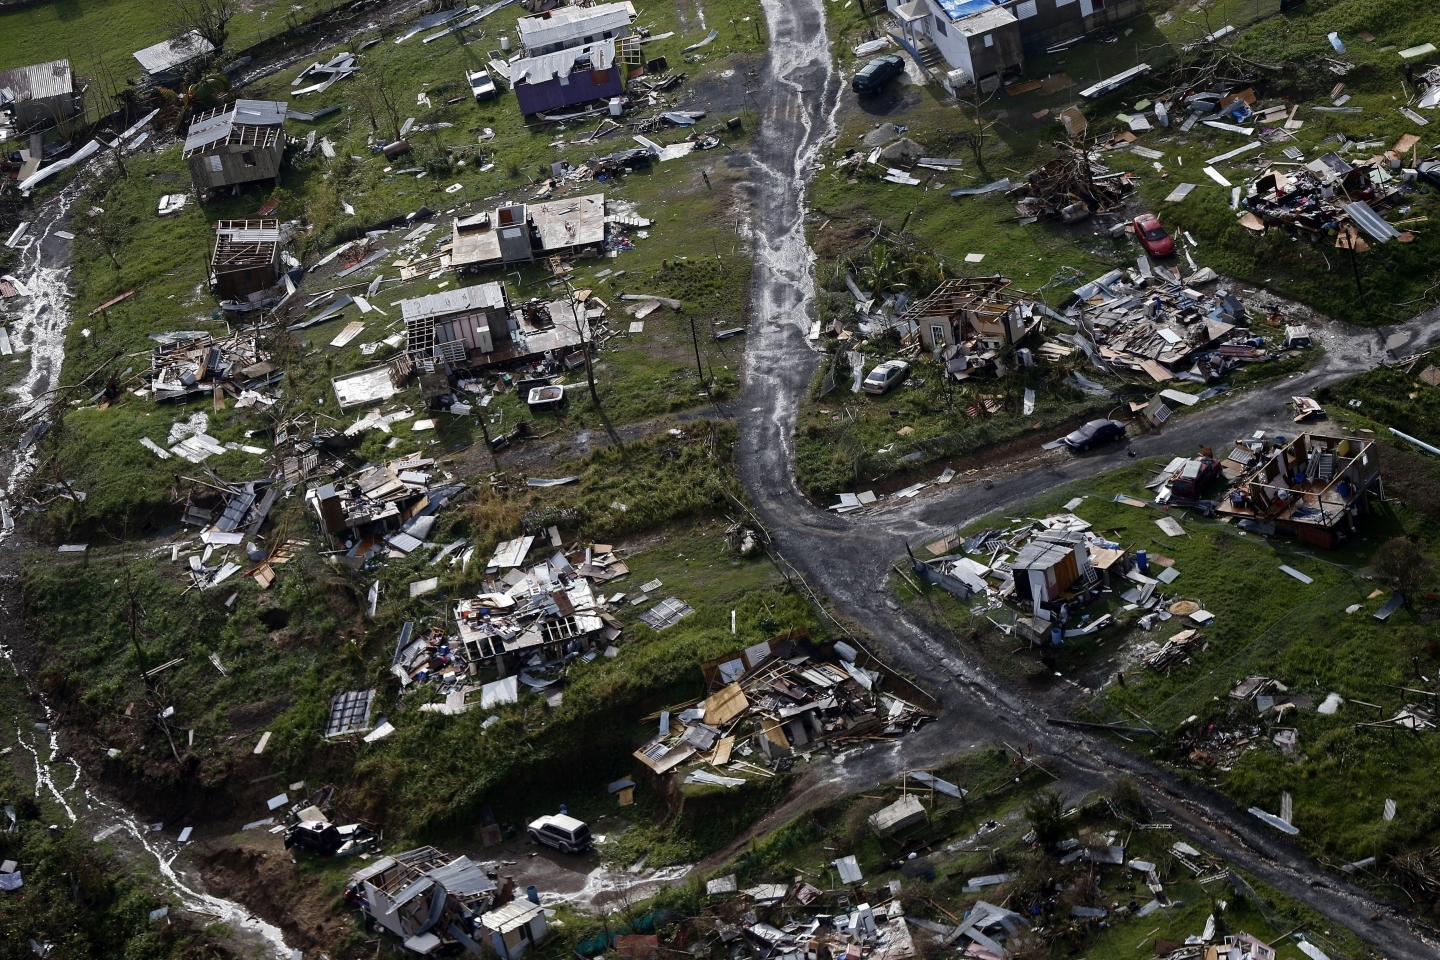 The aftermath of Hurricane Maria in Toa Alta, Puerto Rico, on Thursday, Sept. 28, 2017. (AP Photo/Gerald Herbert)